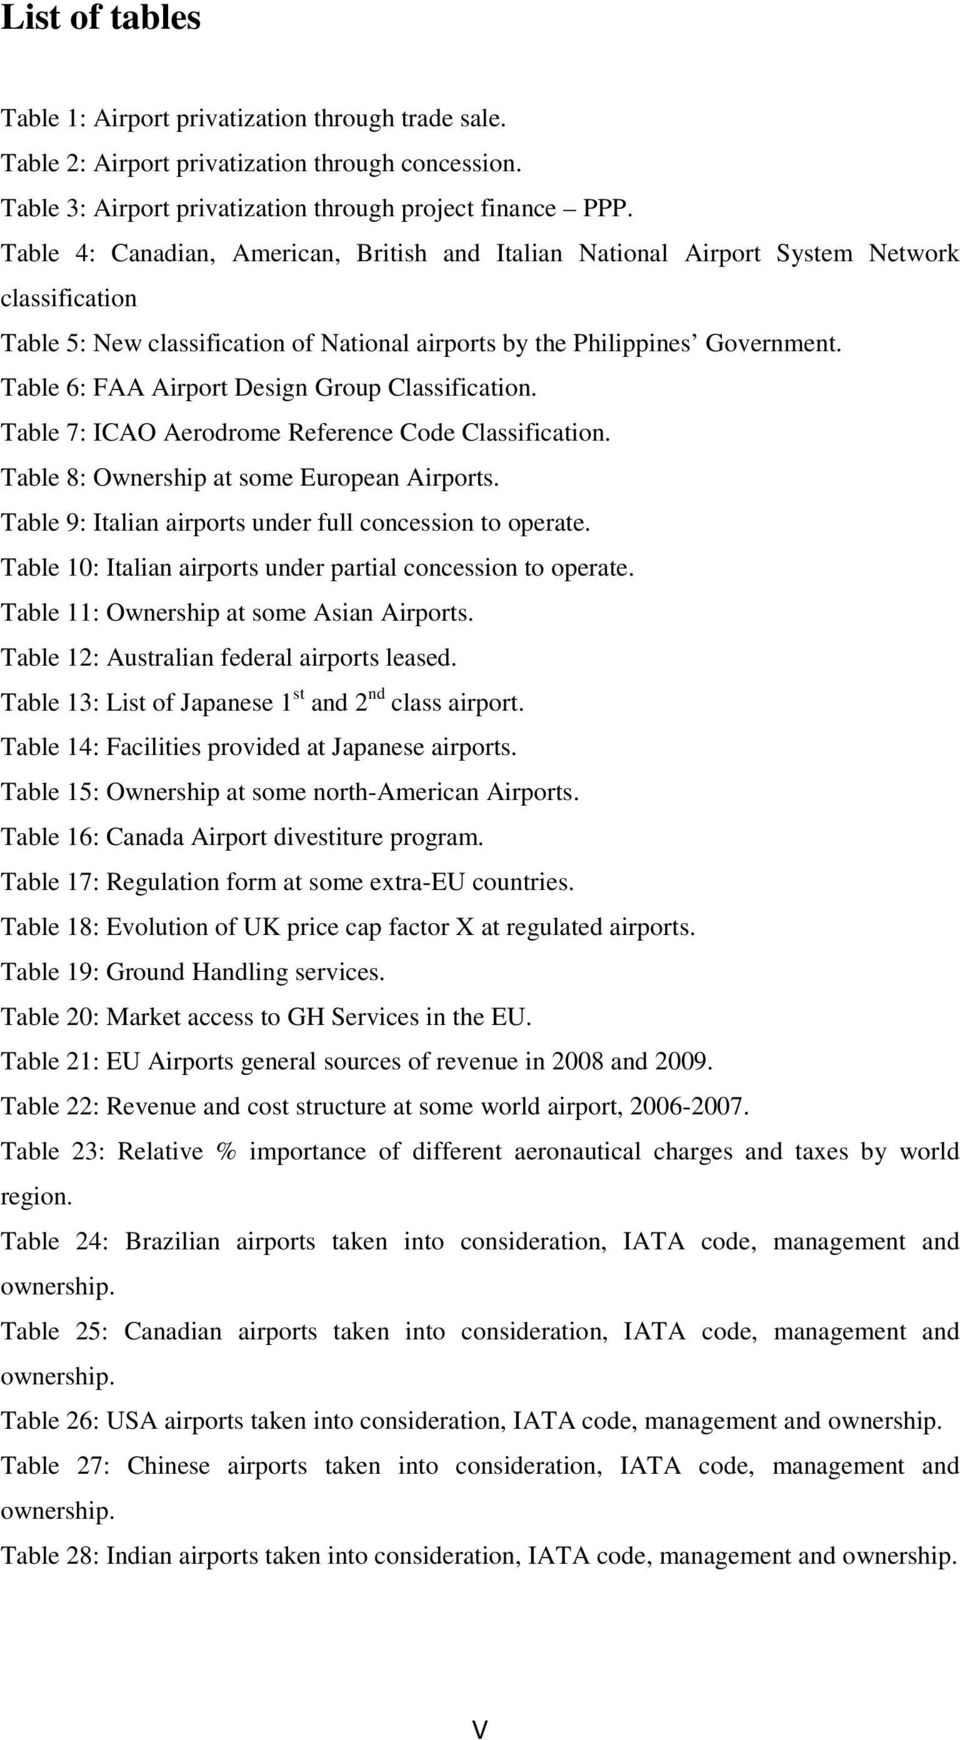 Table 6: FAA Airport Design Group Classification. Table 7: ICAO Aerodrome Reference Code Classification. Table 8: Ownership at some European Airports.